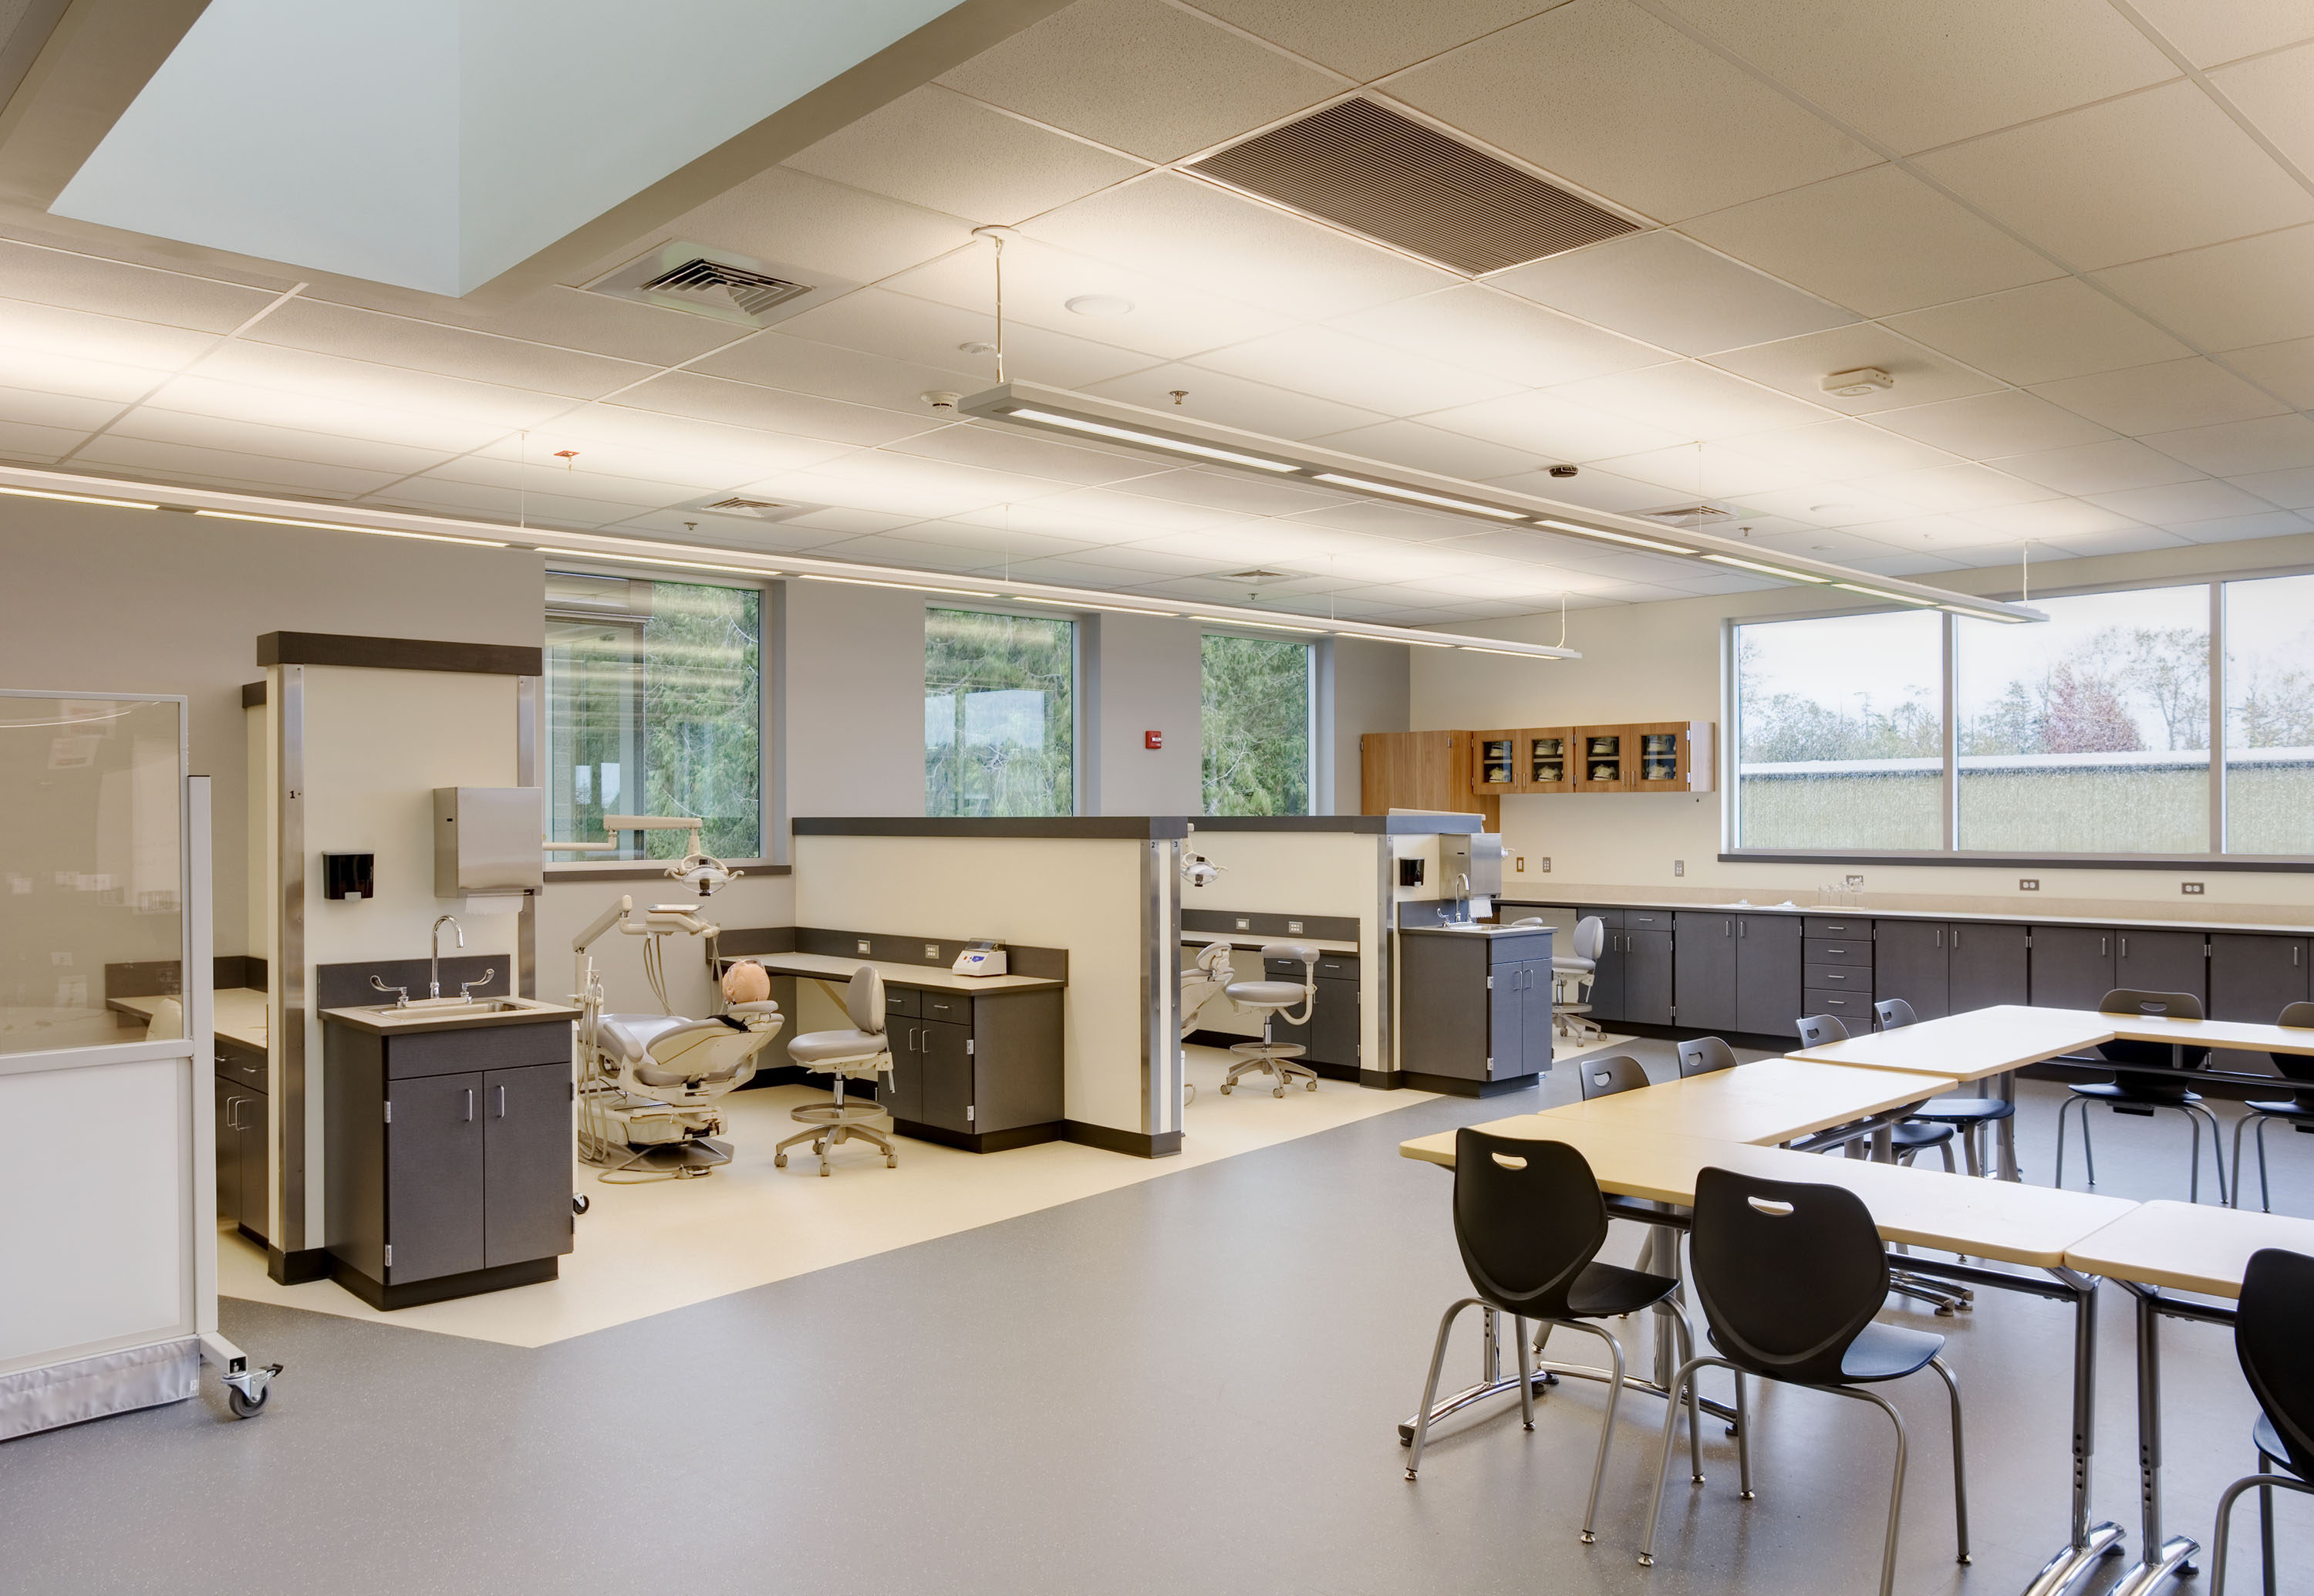 One of the medical classrooms, including full dental stations.